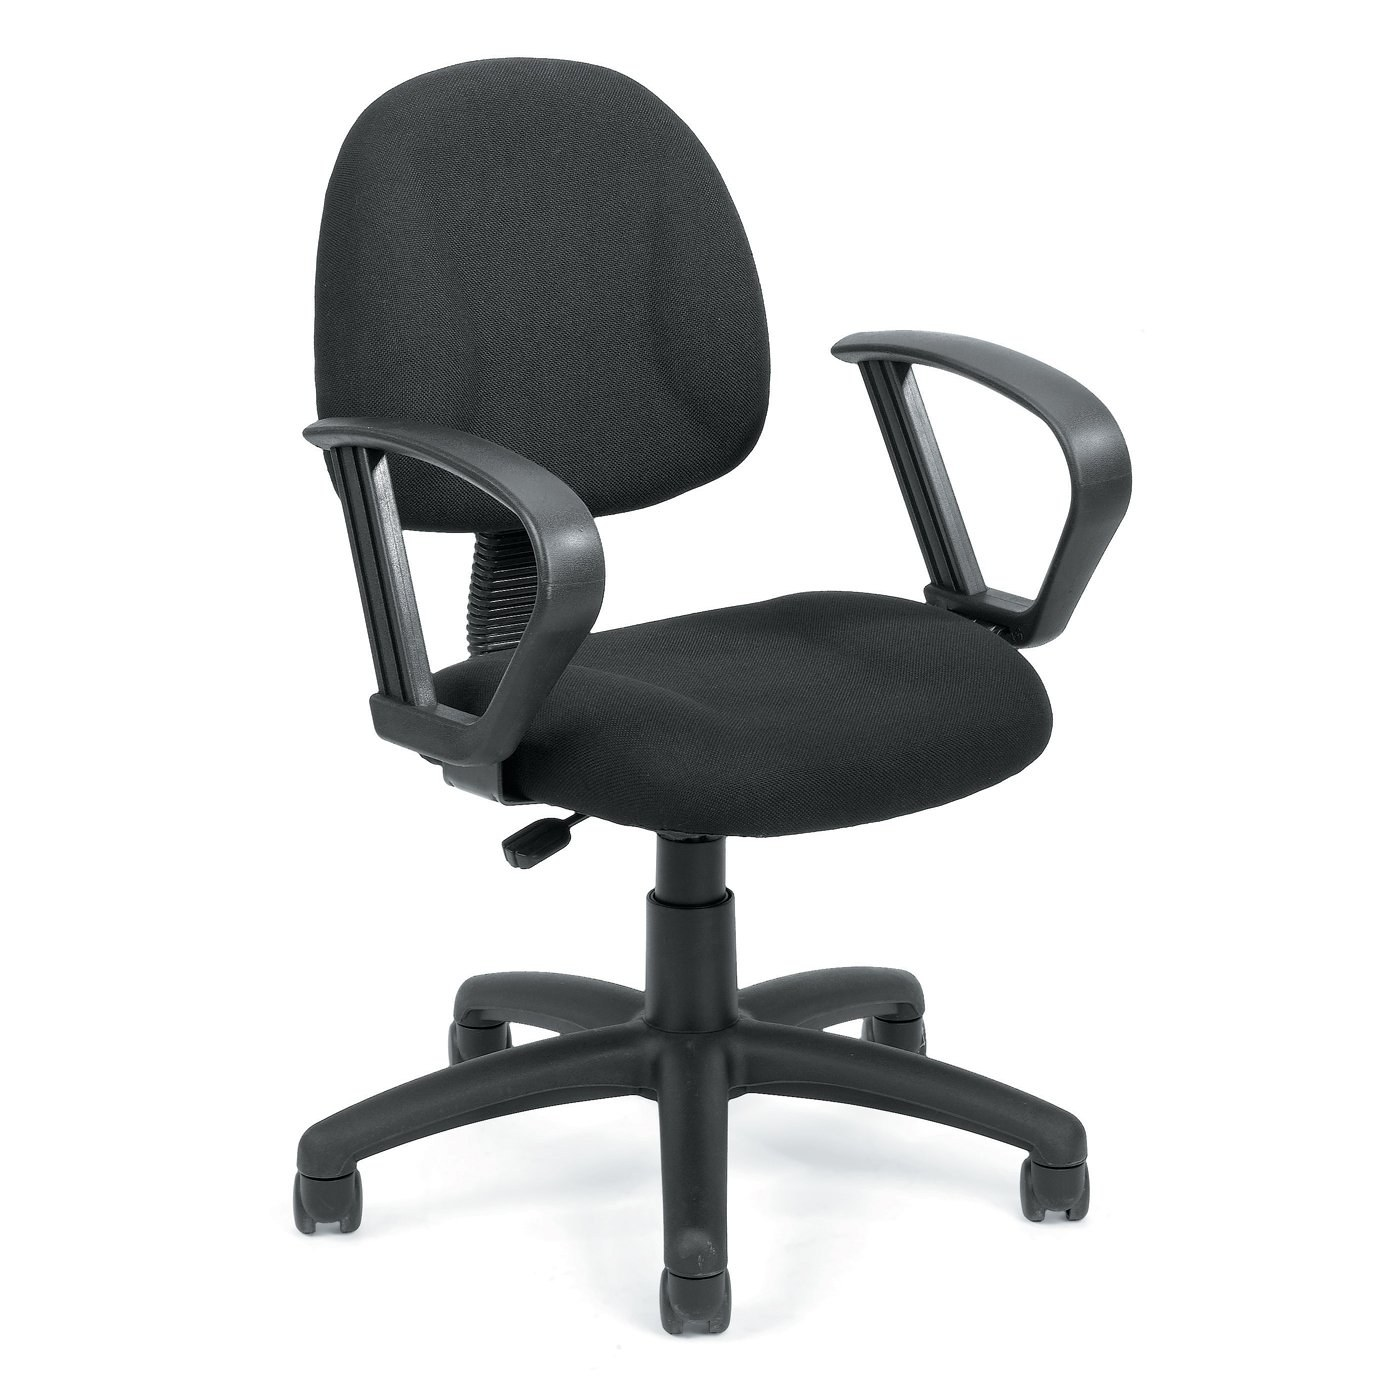 upholstered posture chair intex inflatable pull out review deluxe tweed office with loop arms